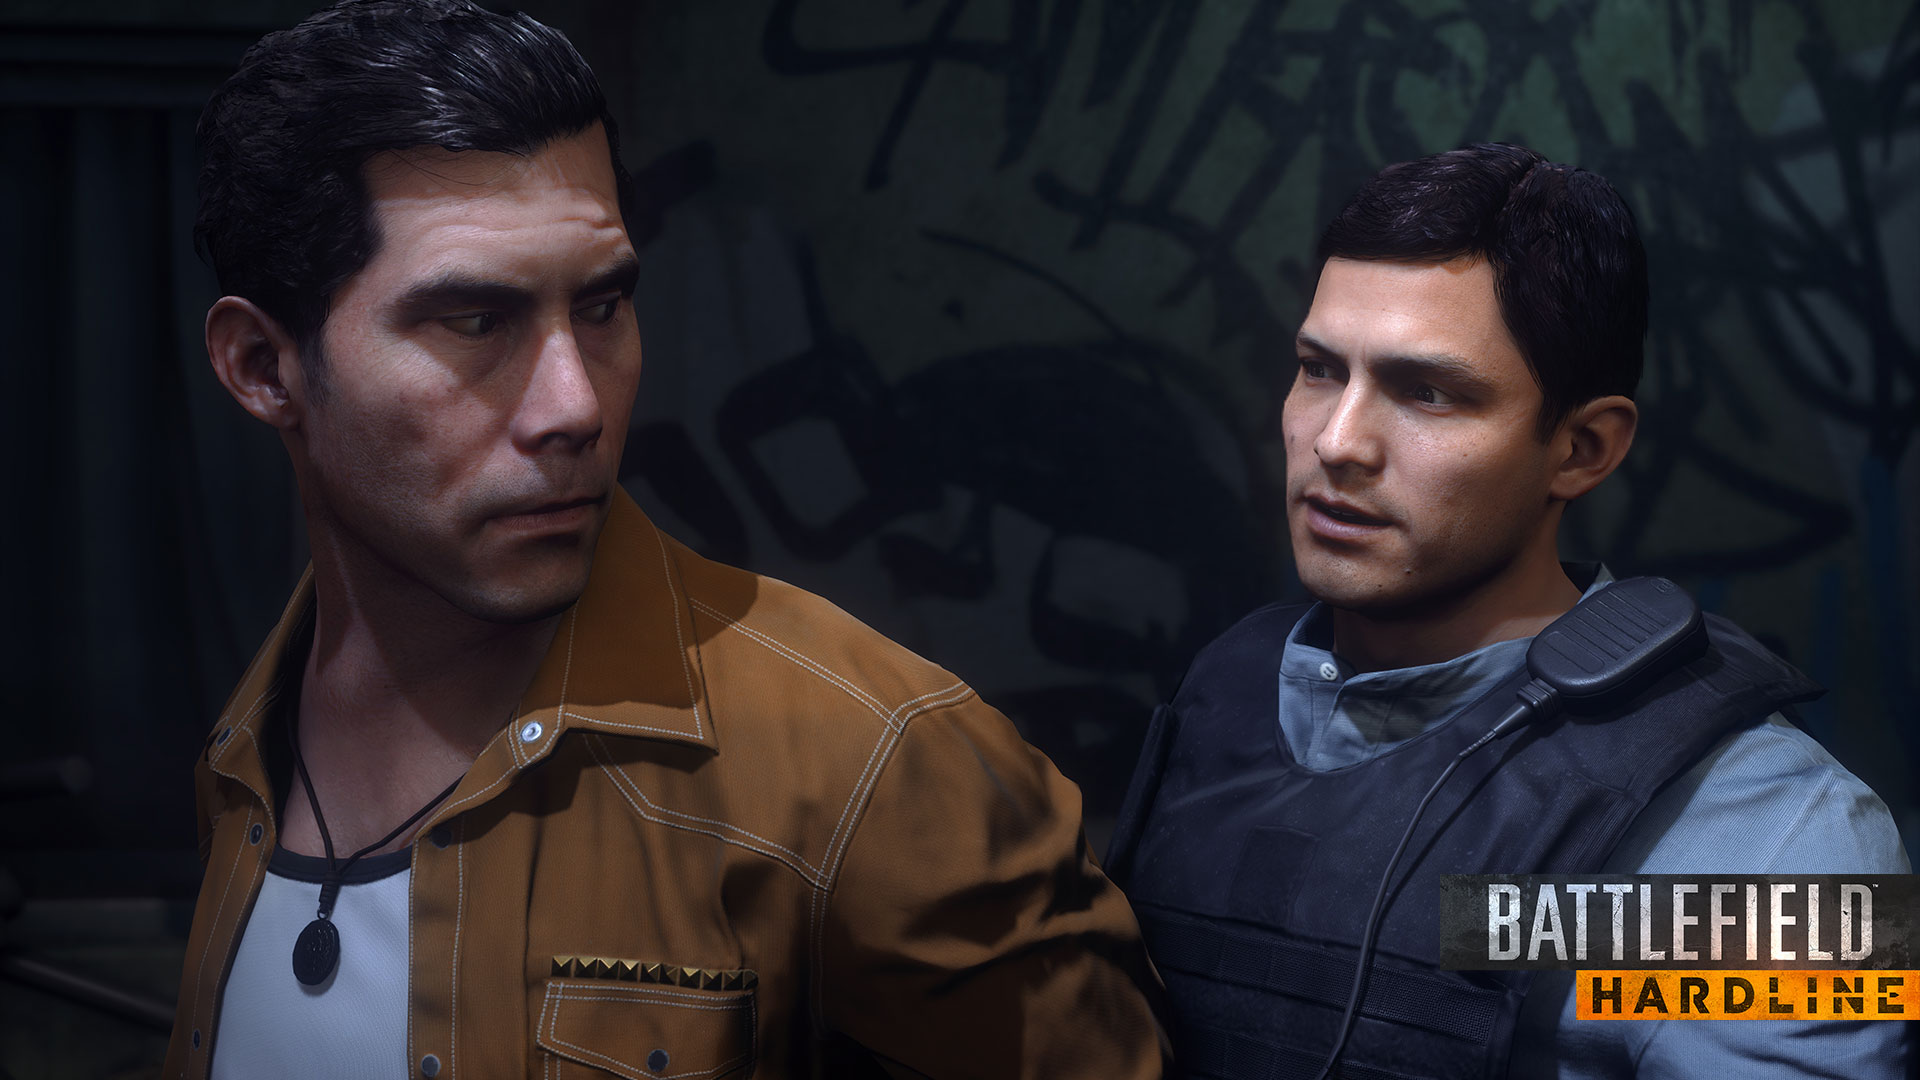 Battlefield Hardline - Nick and Dawes